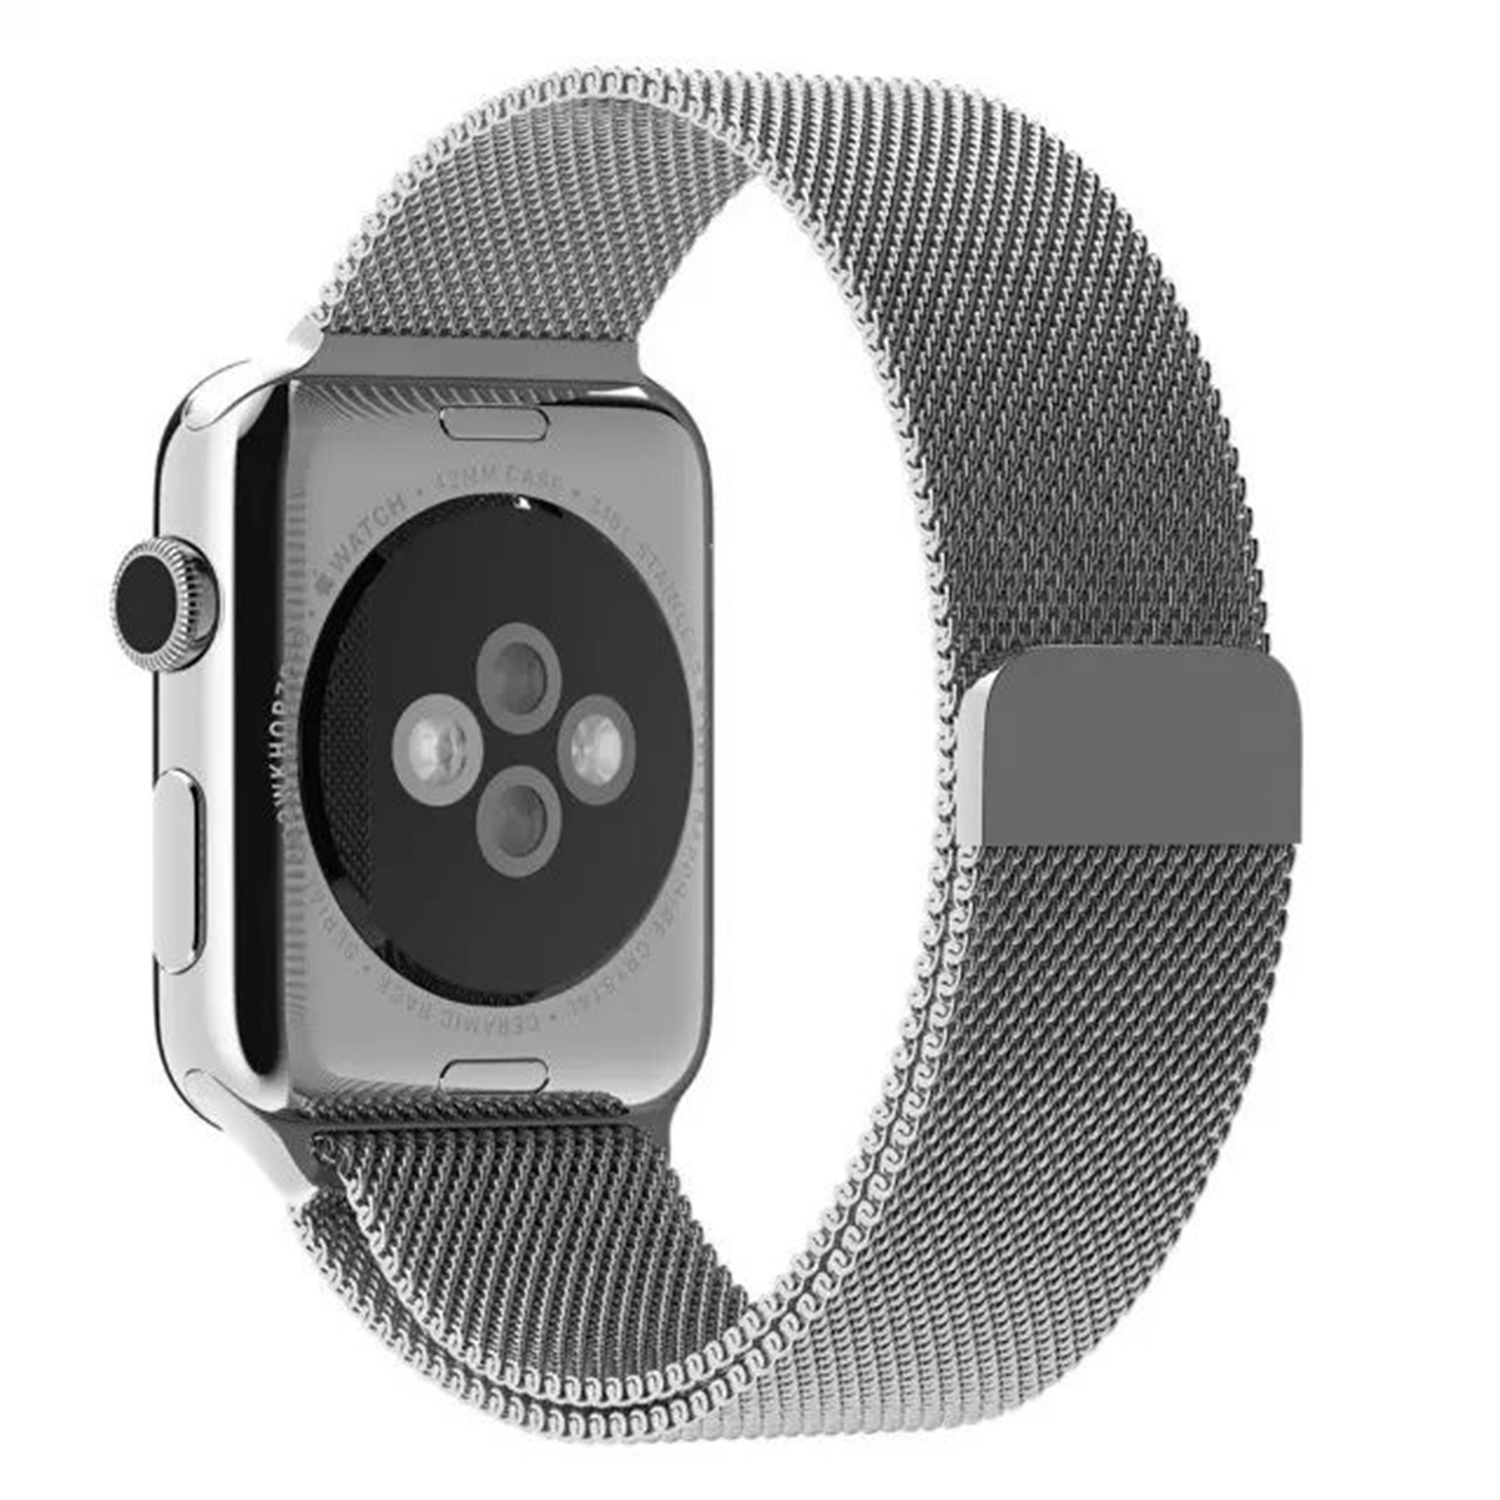 Yemota Pro Apple Watch 38 mm Stainless Steel Magnetarmband - Silber